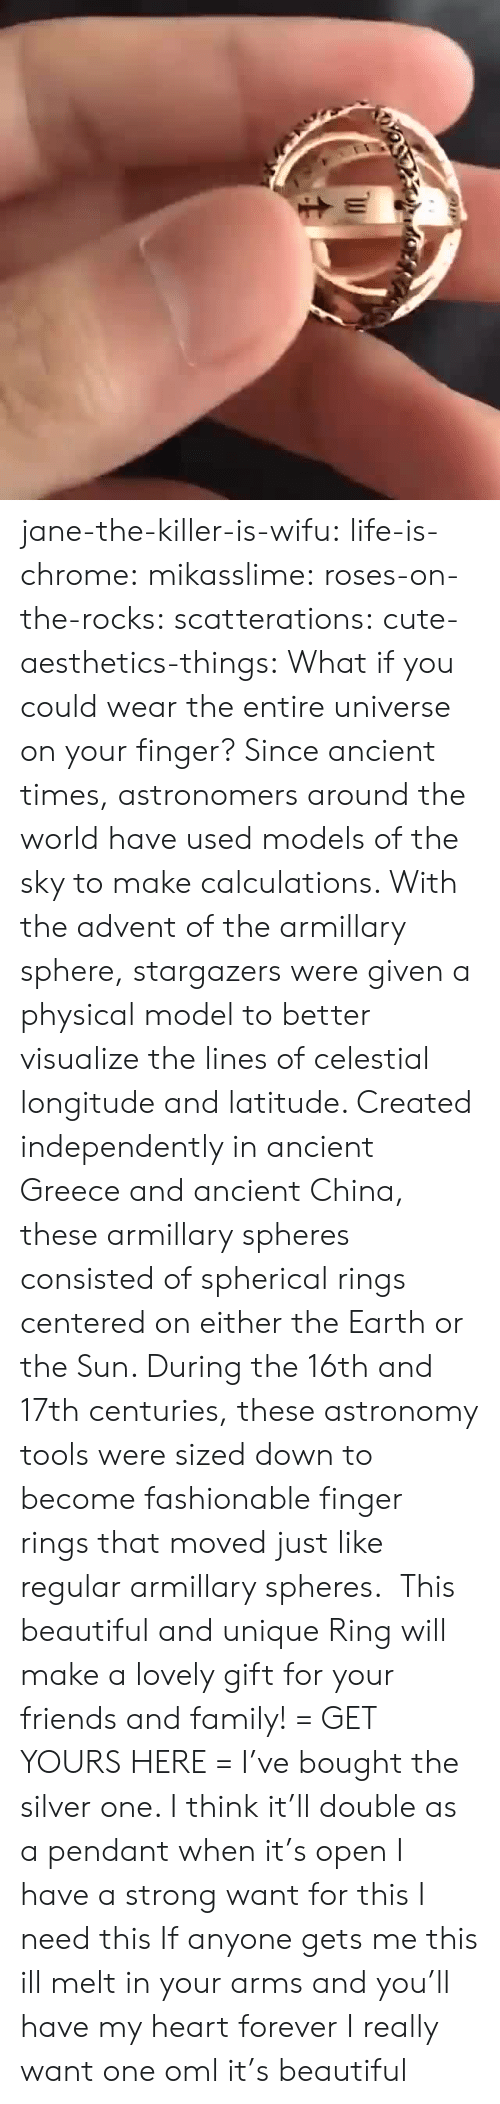 pendant: jane-the-killer-is-wifu:  life-is-chrome:  mikasslime:  roses-on-the-rocks:  scatterations:  cute-aesthetics-things: What if you could wear the entire universe on your finger? Since ancient times, astronomers around the world have used models of the sky to make calculations. With the advent of the armillary sphere, stargazers were given a physical model to better visualize the lines of celestial longitude and latitude. Created independently in ancient Greece and ancient China, these armillary spheres consisted of spherical rings centered on either the Earth or the Sun. During the 16th and 17th centuries, these astronomy tools were sized down to become fashionable finger rings that moved just like regular armillary spheres.  This beautiful and unique Ring will make a lovely gift for your friends and family! = GET YOURS HERE =   I've bought the silver one. I think it'll double as a pendant when it's open   I have a strong want for this   I need this  If anyone gets me this ill melt in your arms and you'll have my heart forever  I really want one oml it's beautiful